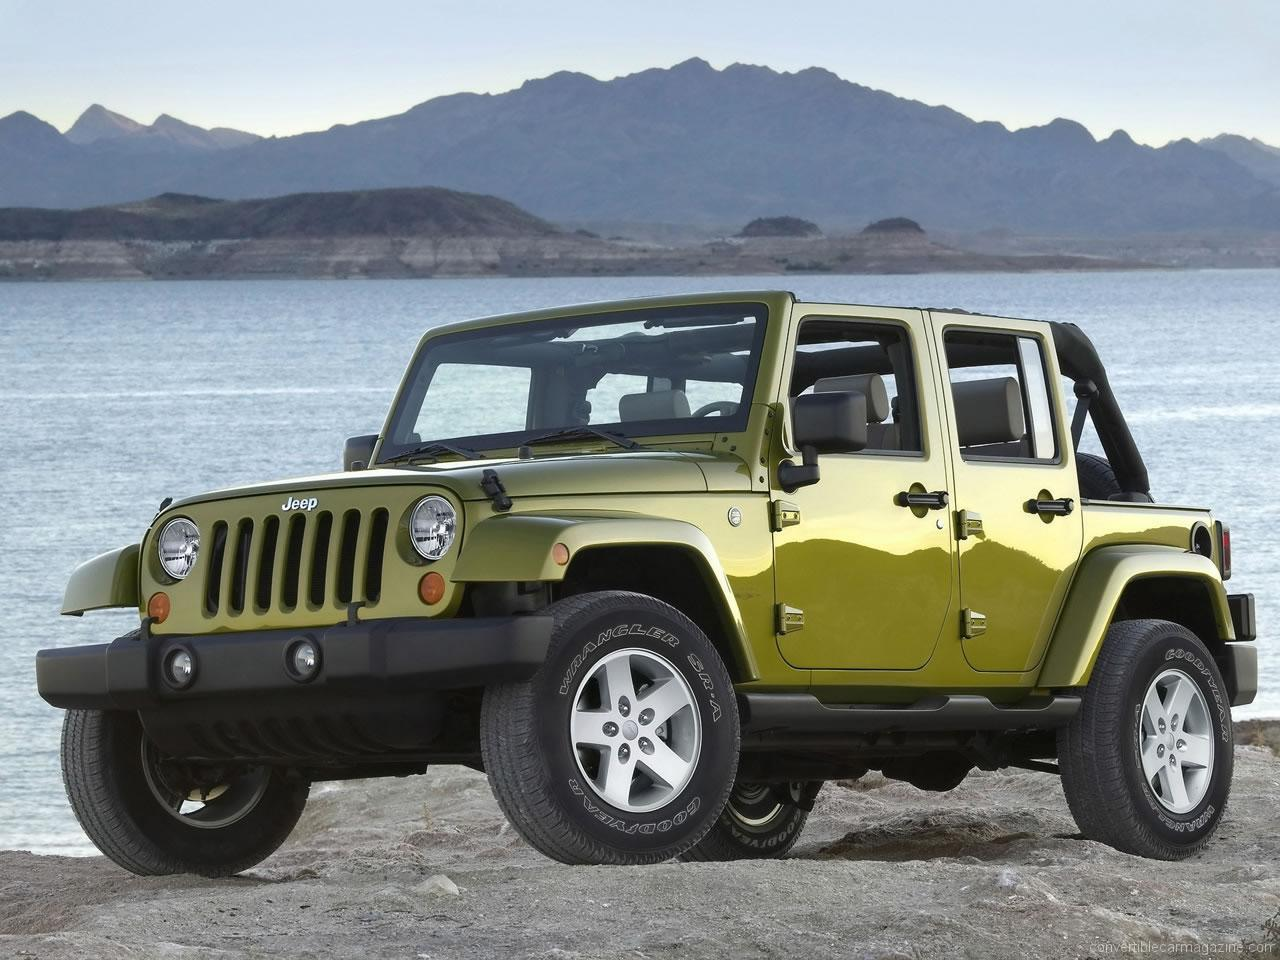 Jeep Wrangler Arctic 2012 Exotic Car Image #04 of 12 : Diesel Station